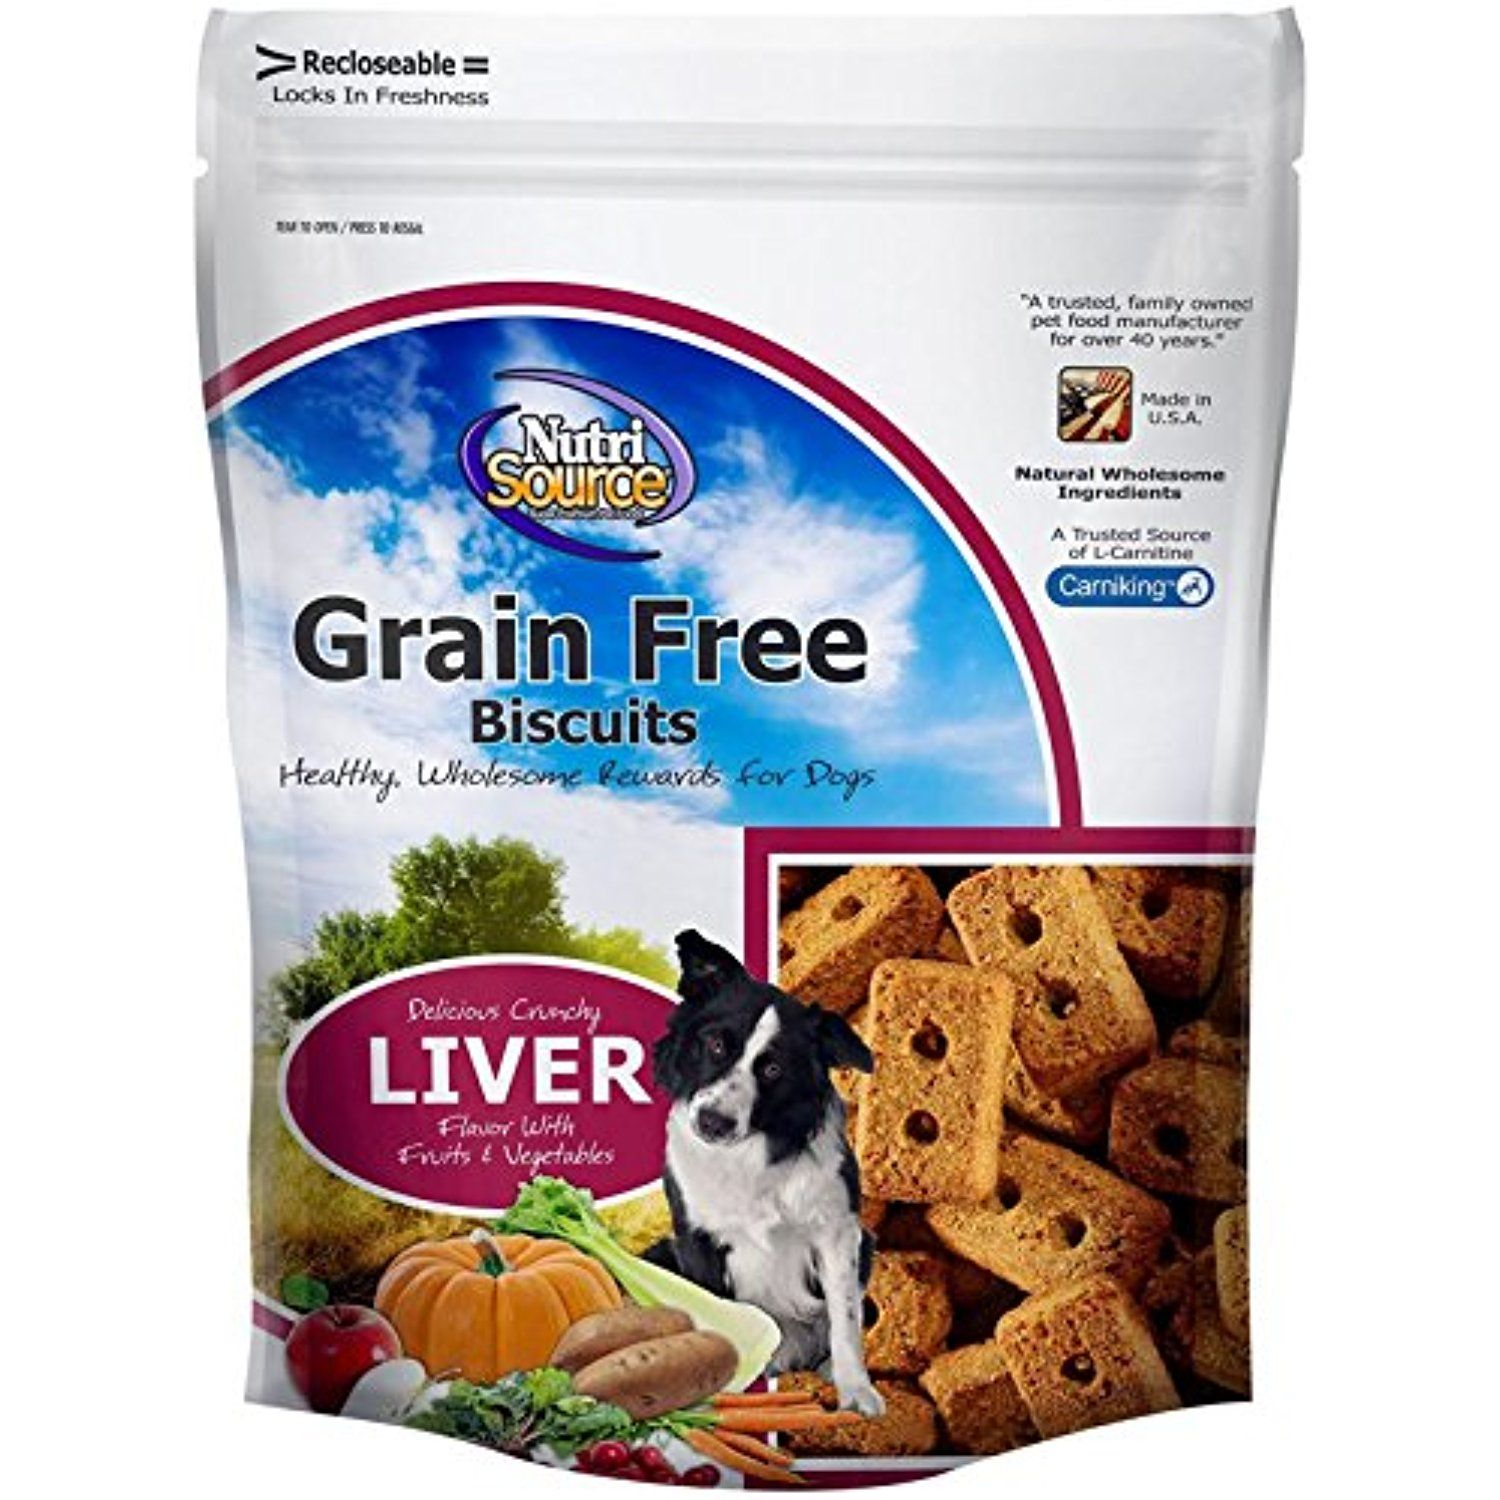 Nutri source grain free liver biscuit 14 oz to have